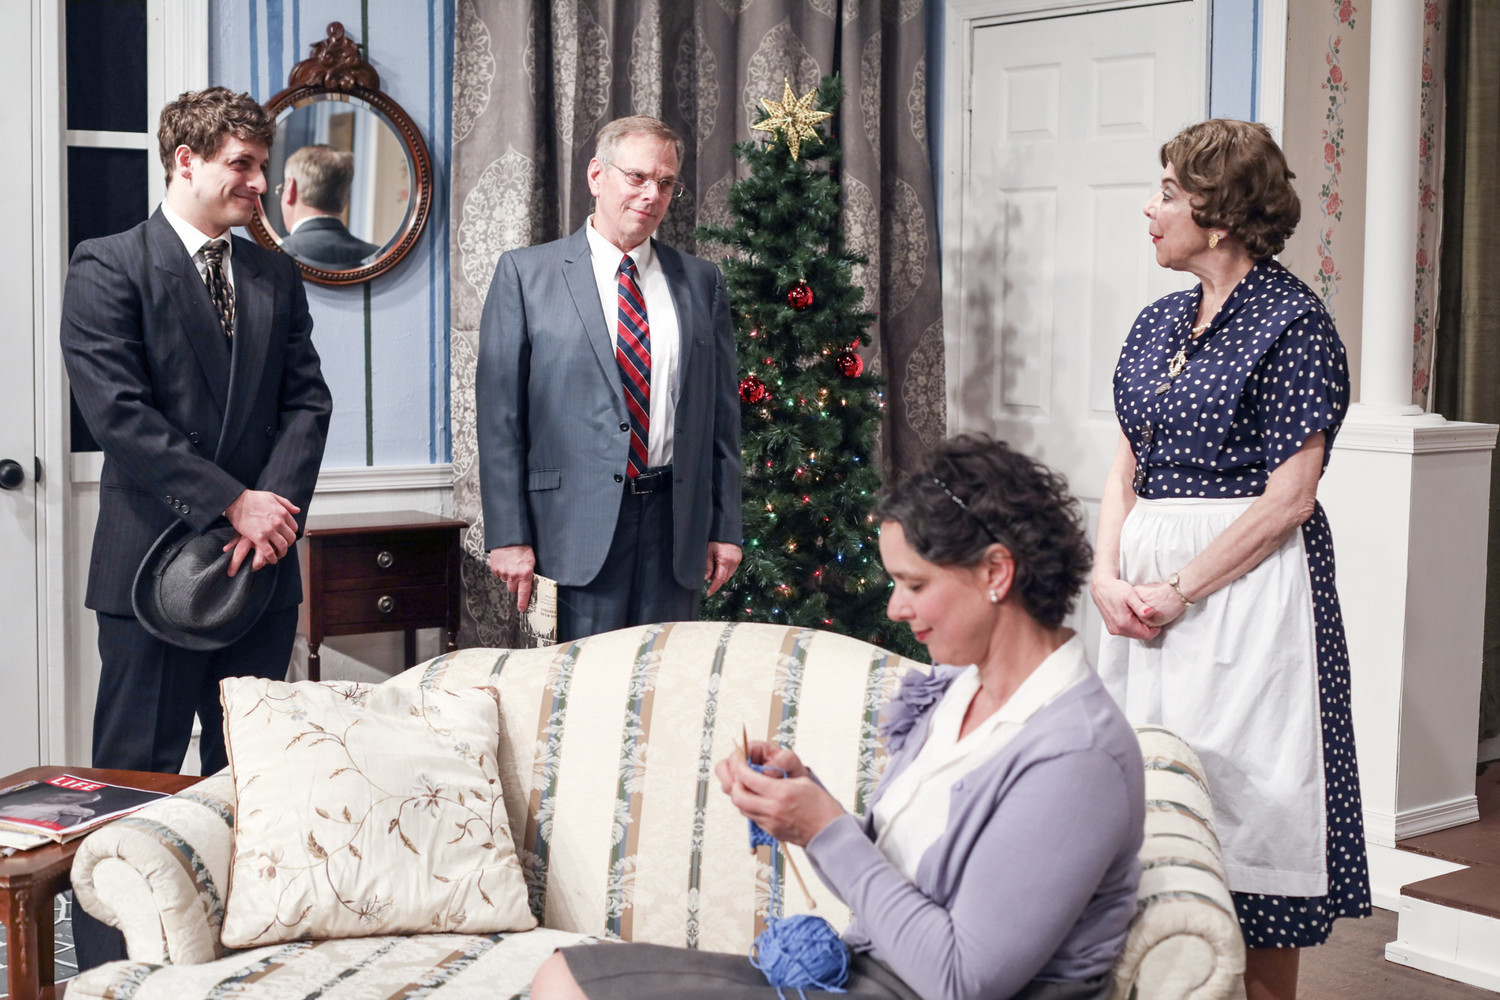 BWW Review: THE LAST NIGHT OF BALLYHOO at Oyster Mill Playhouse